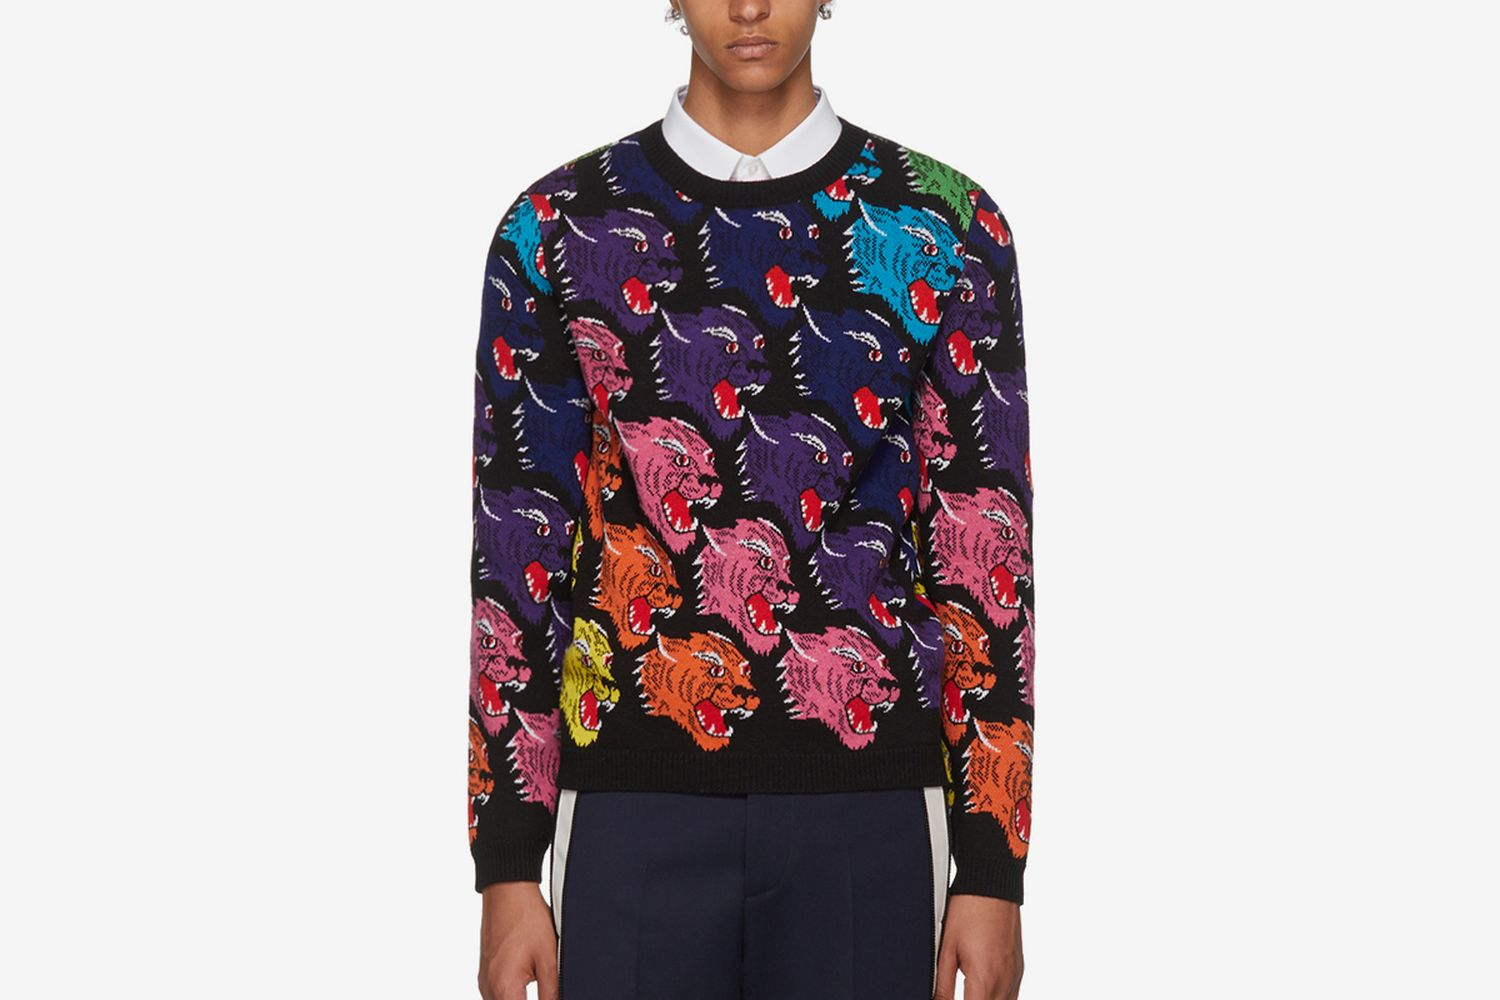 Panther Face Sweater